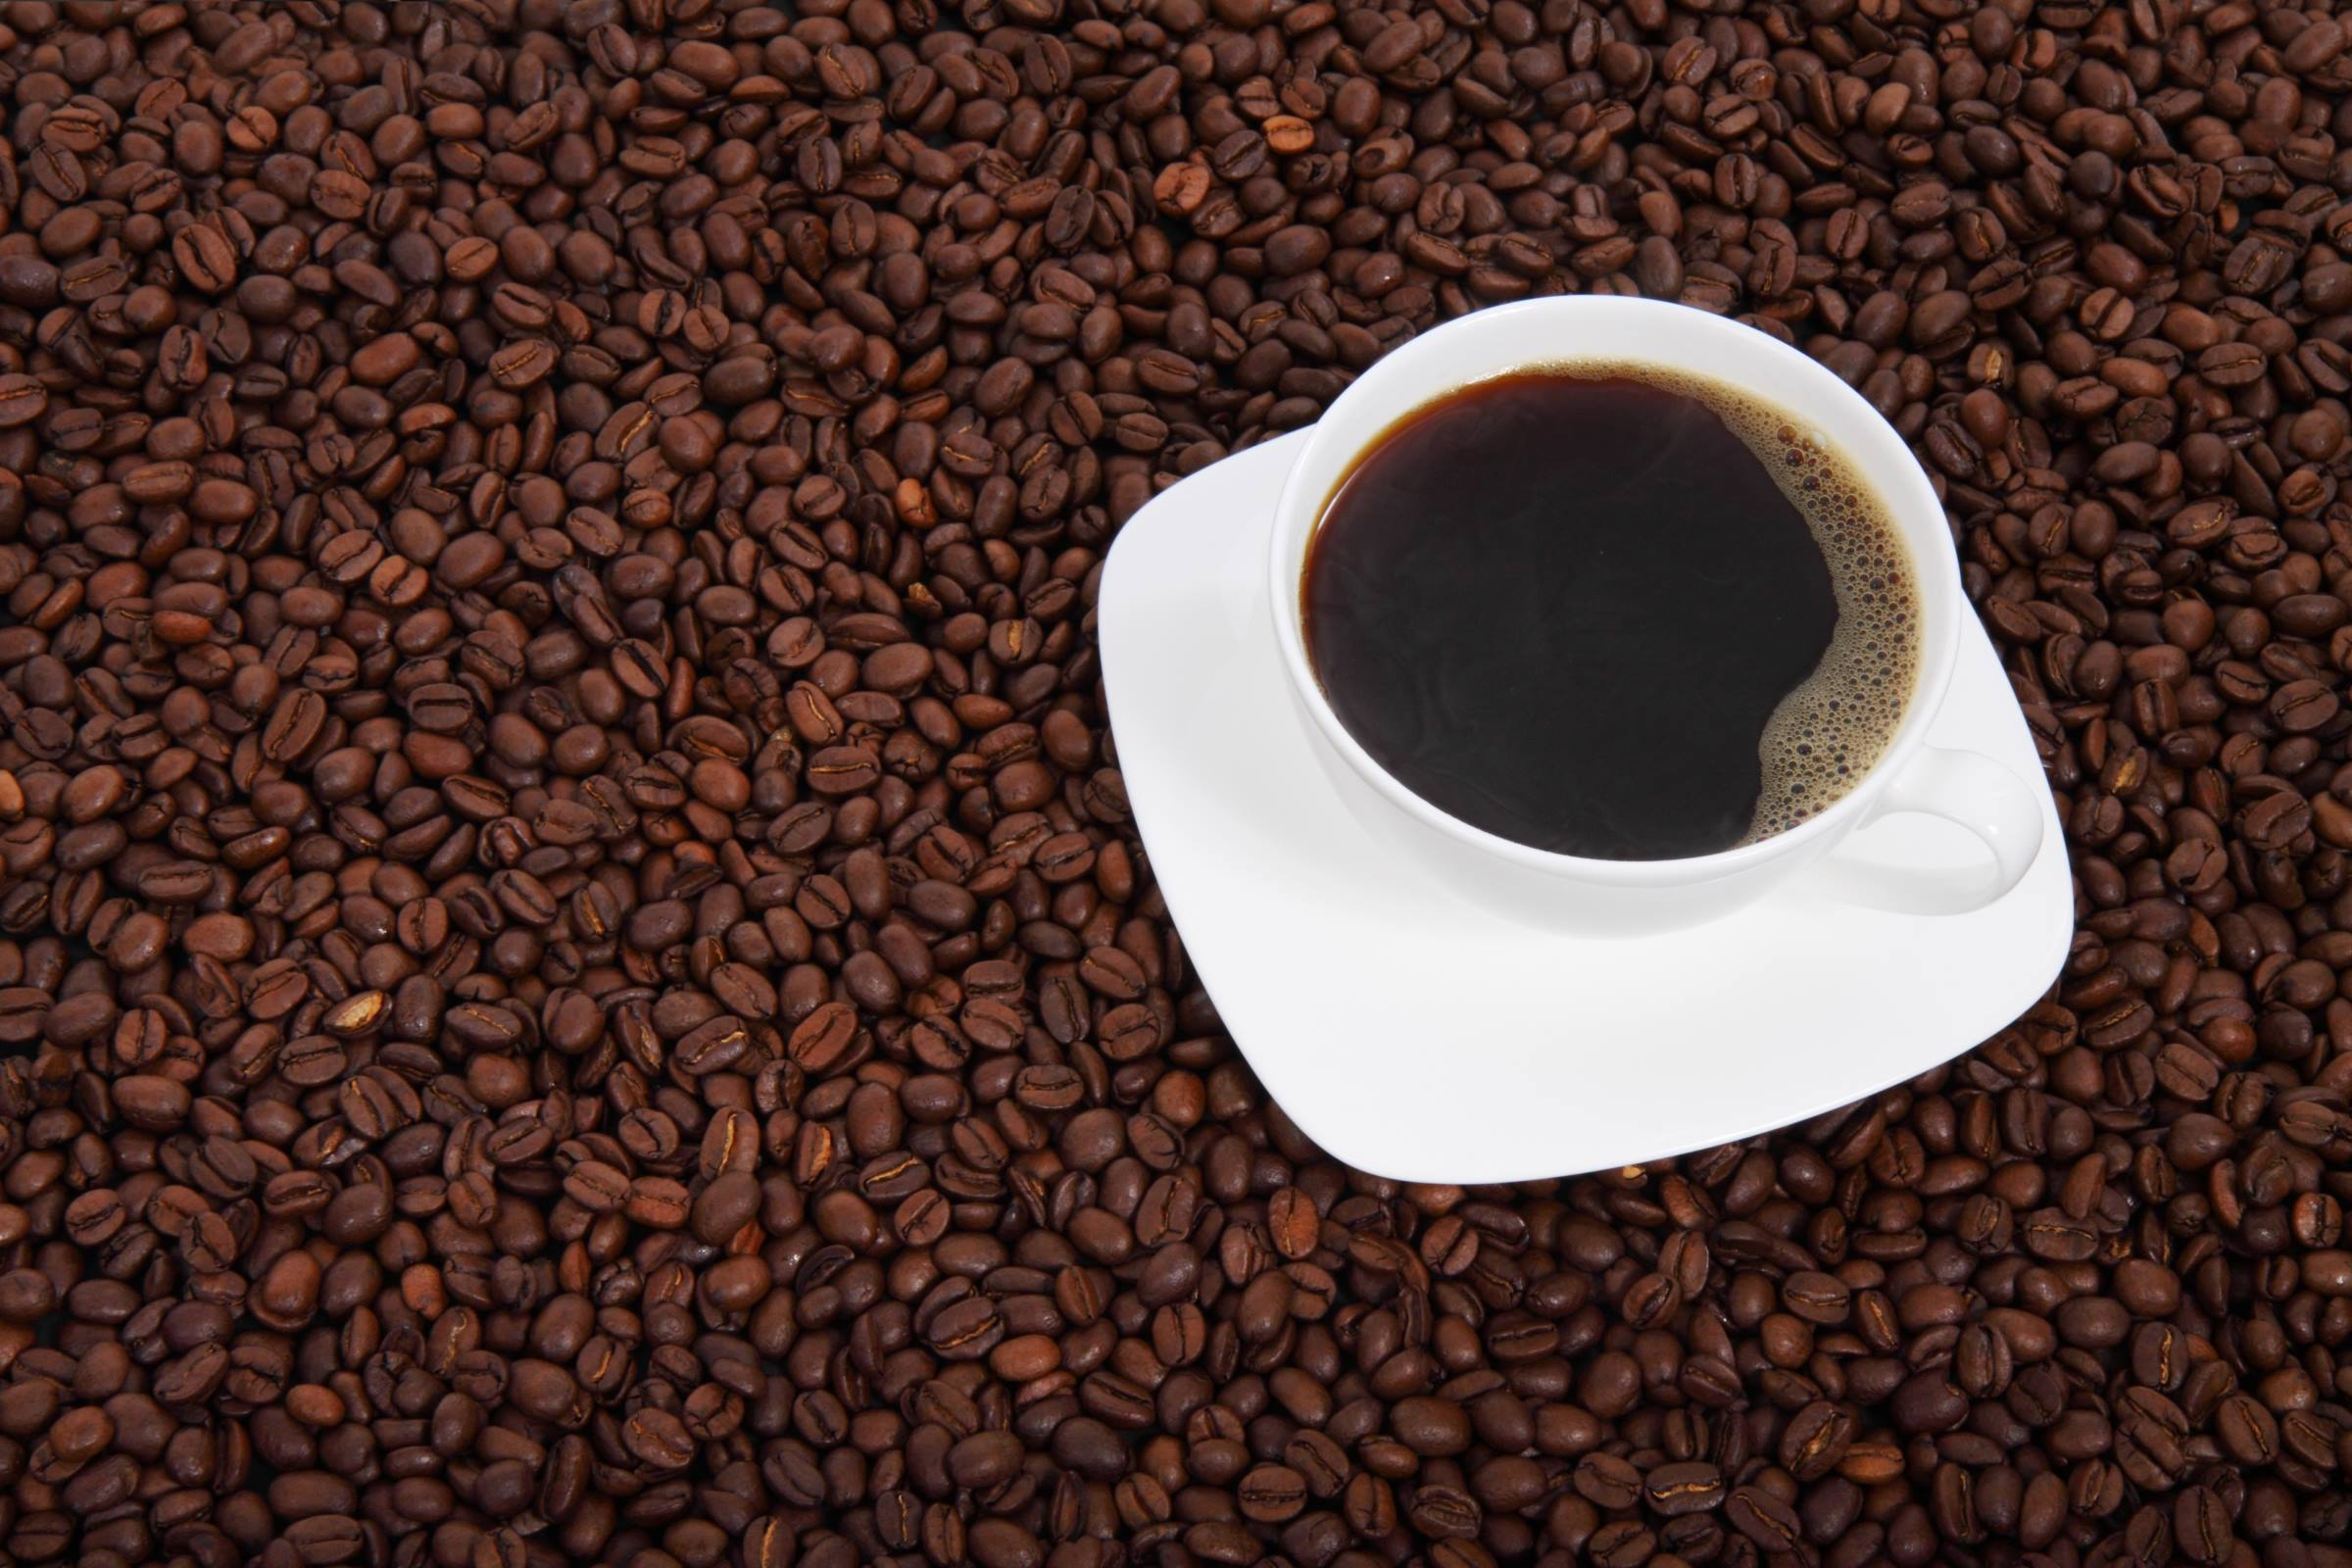 Cup of black coffee on coffee beans